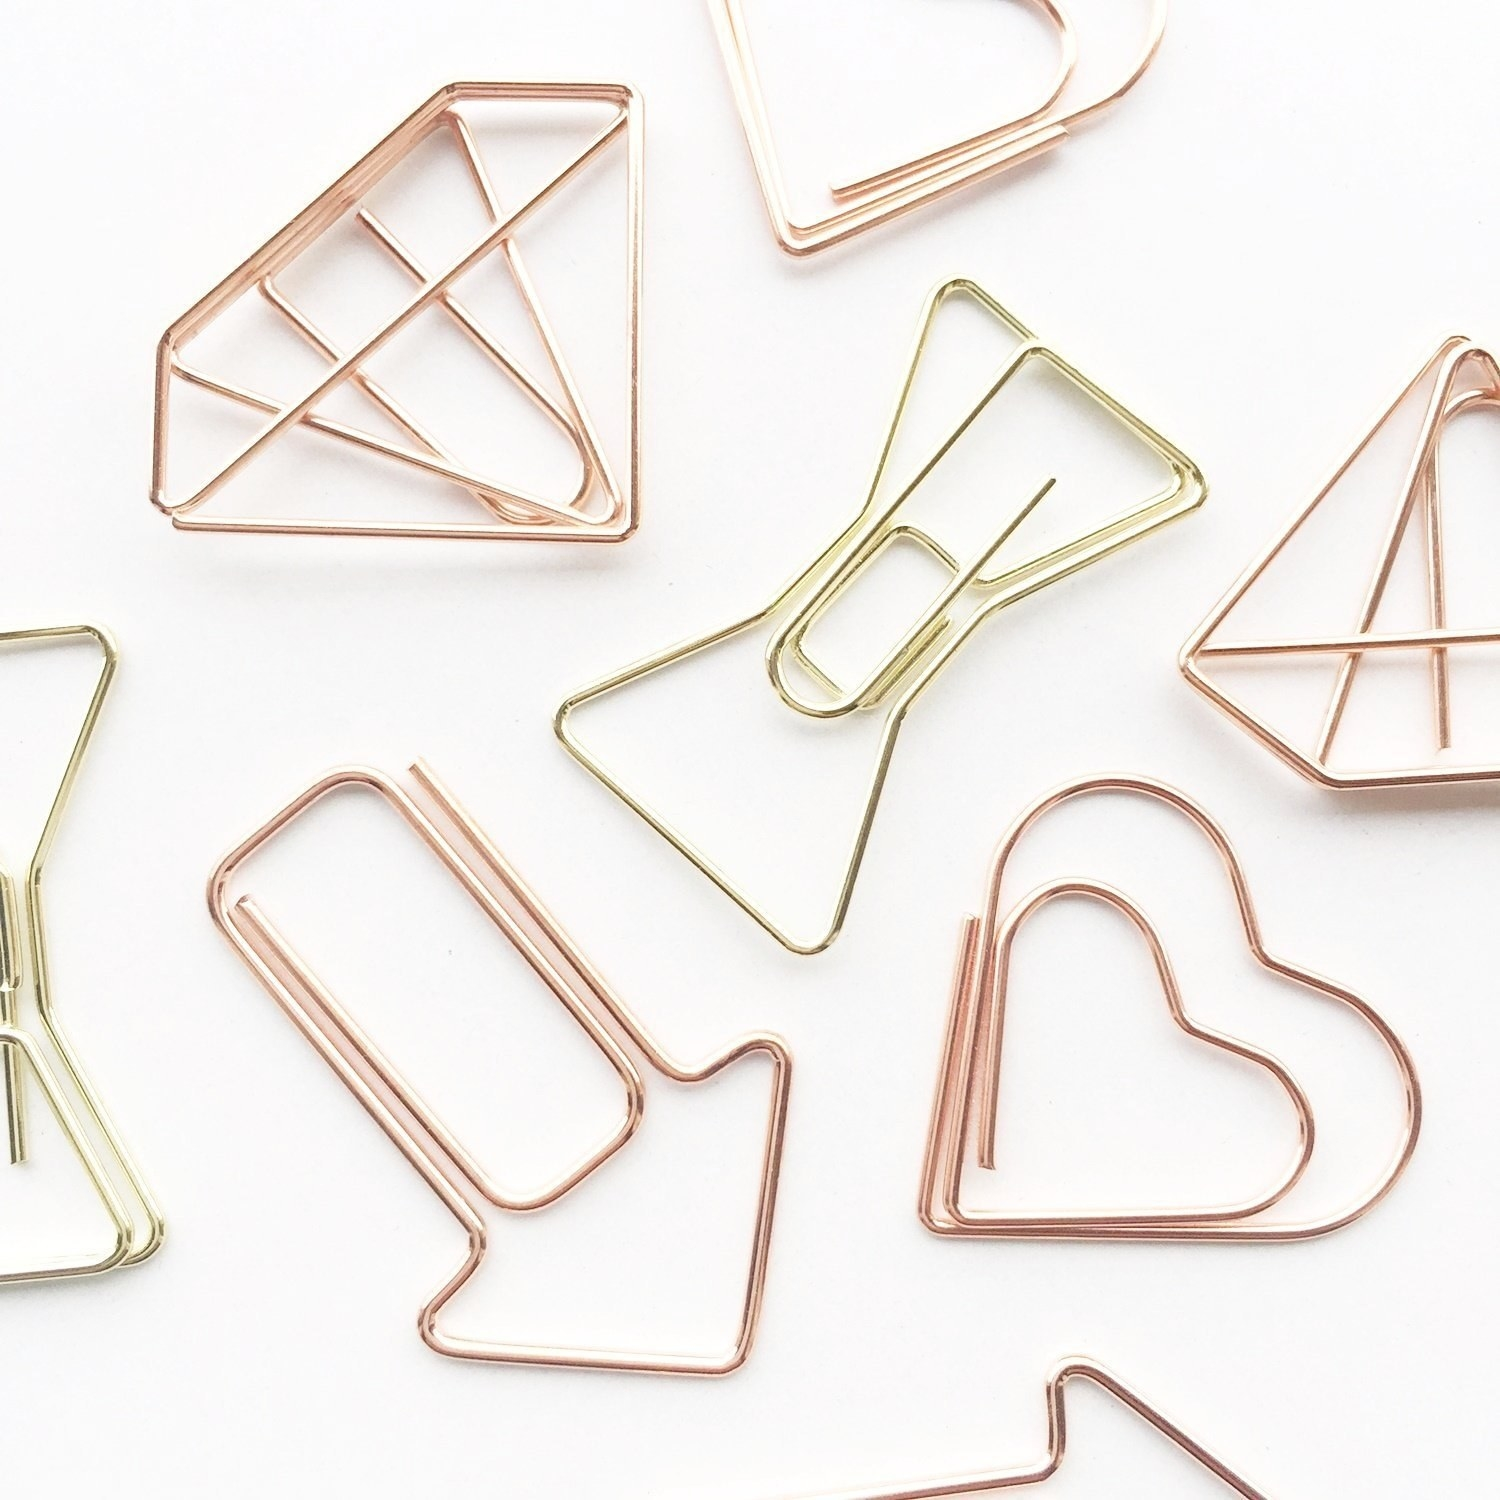 Rose gold paperclips in a variety of shapes - an arrow, a heart, diamond, and hourglass.